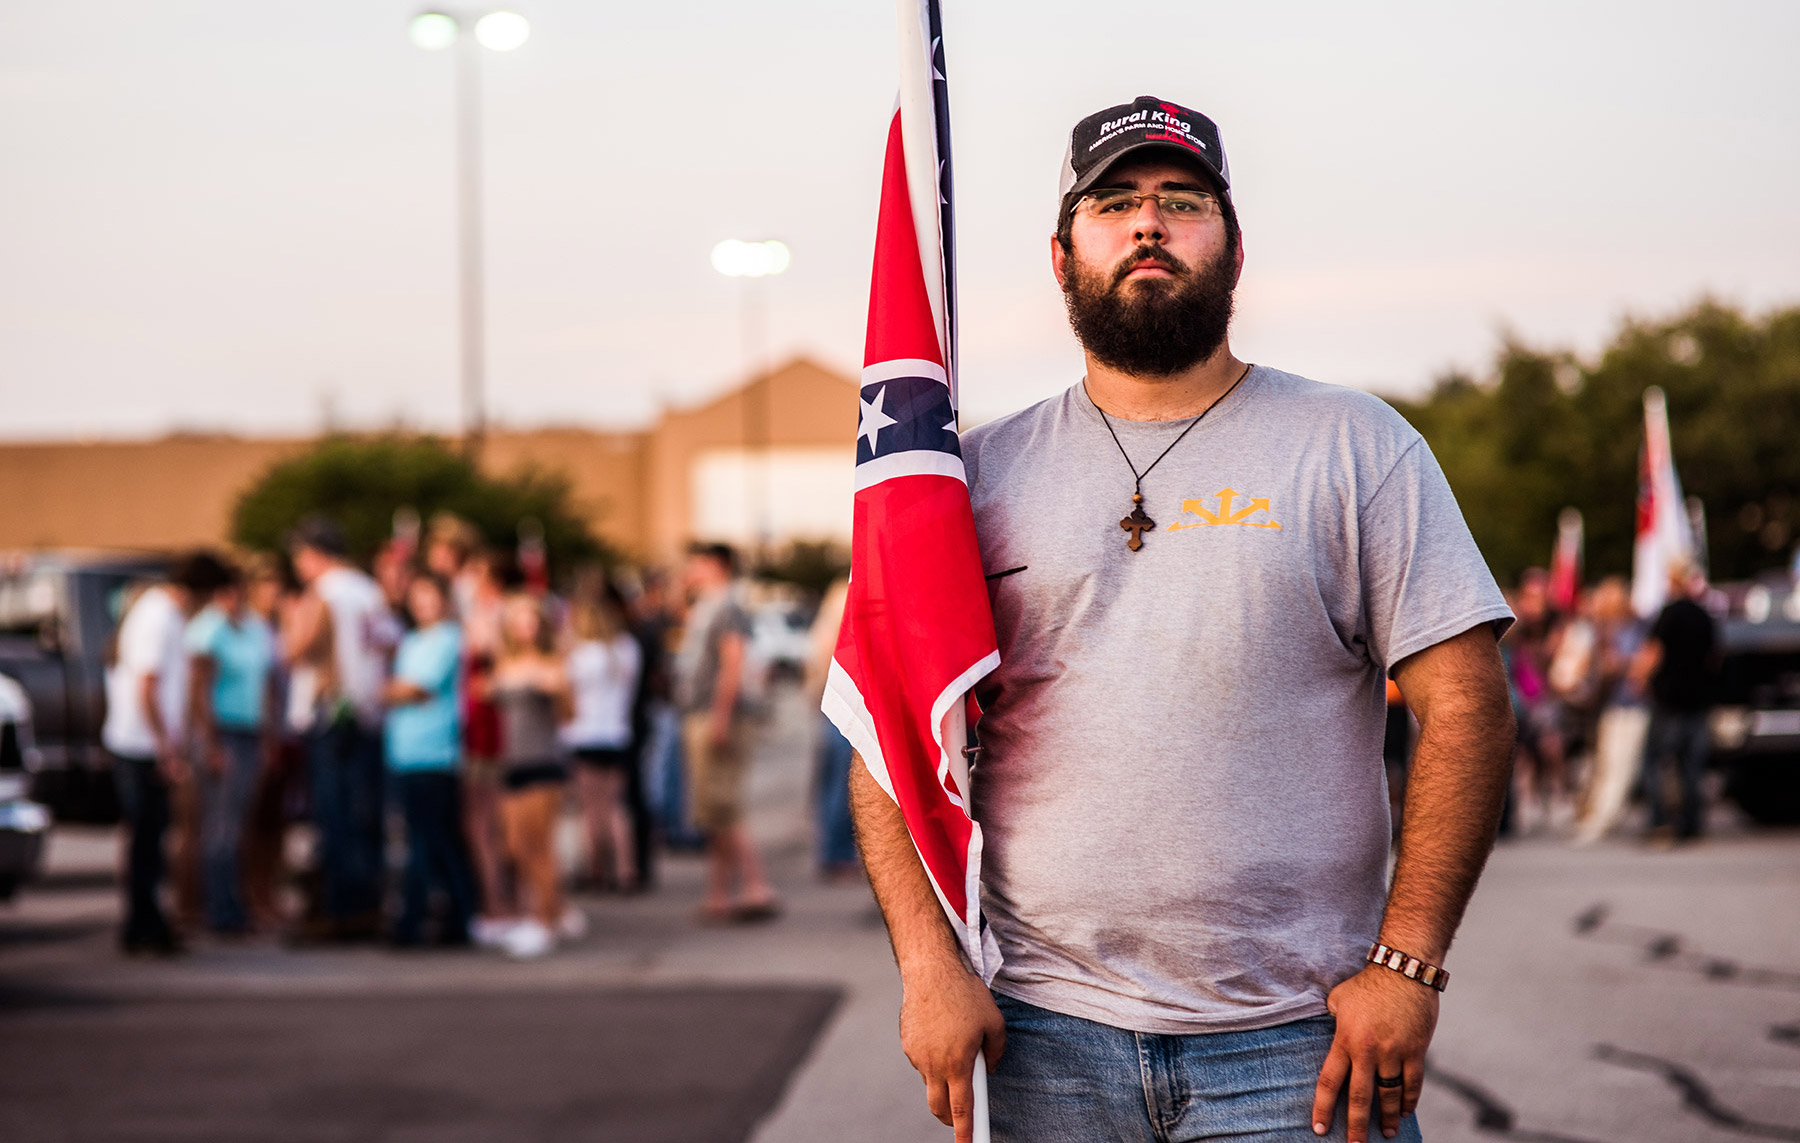 ... Protesters at Trump Rally Faces Charges | Southern Poverty Law Center